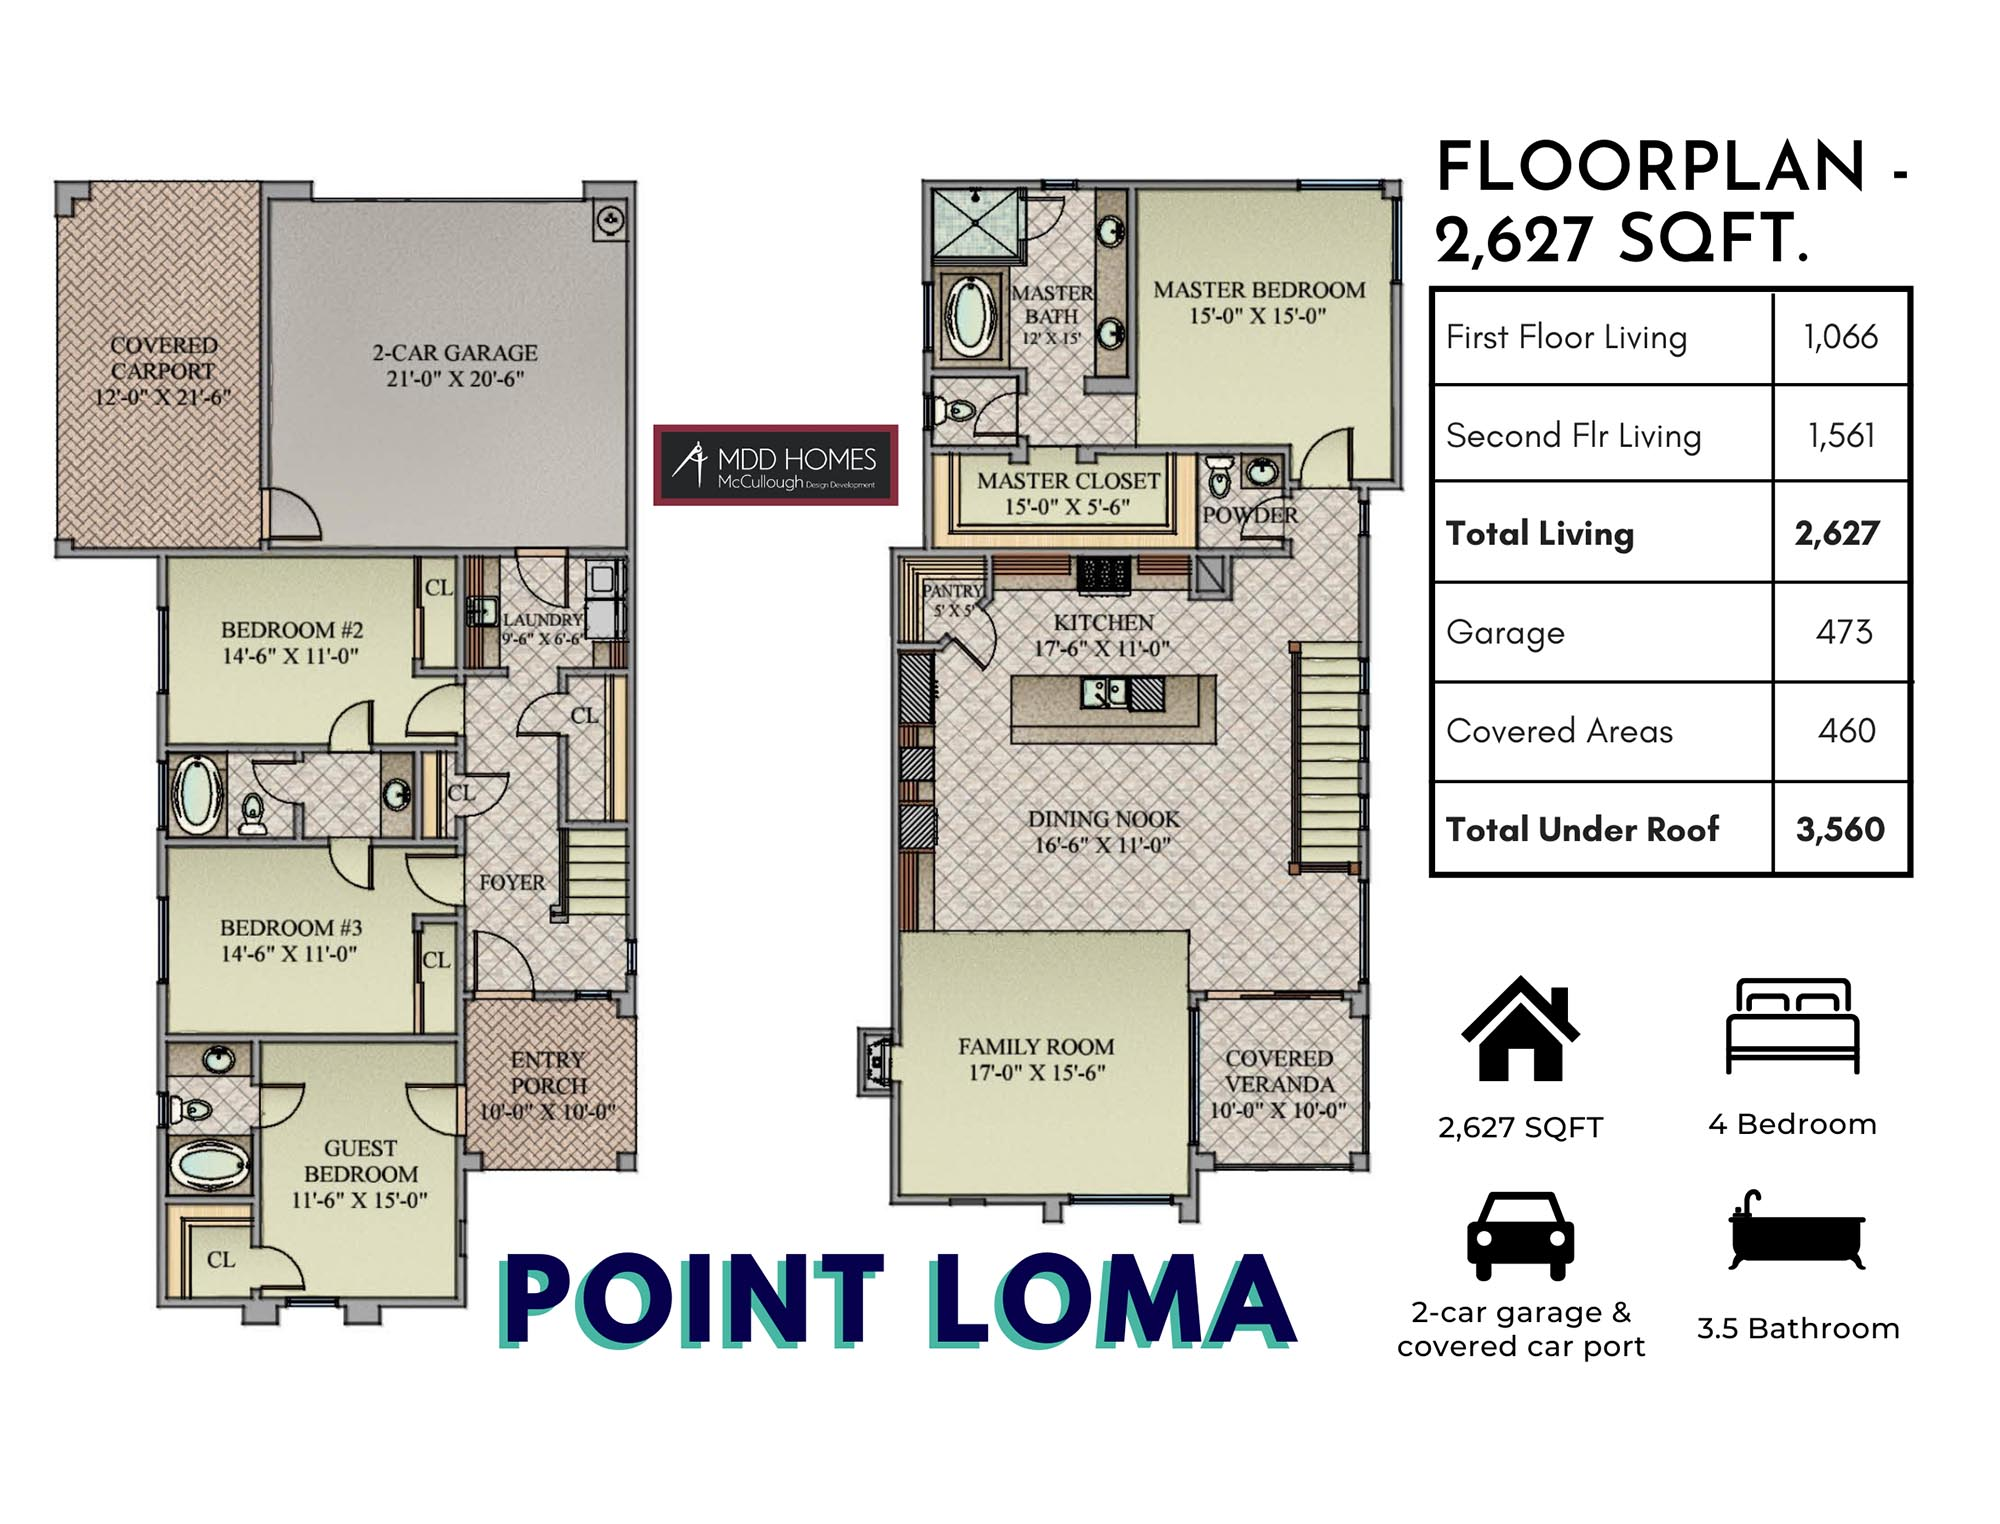 hill-st-point-loma-floorplan-lot-1-6-1-16